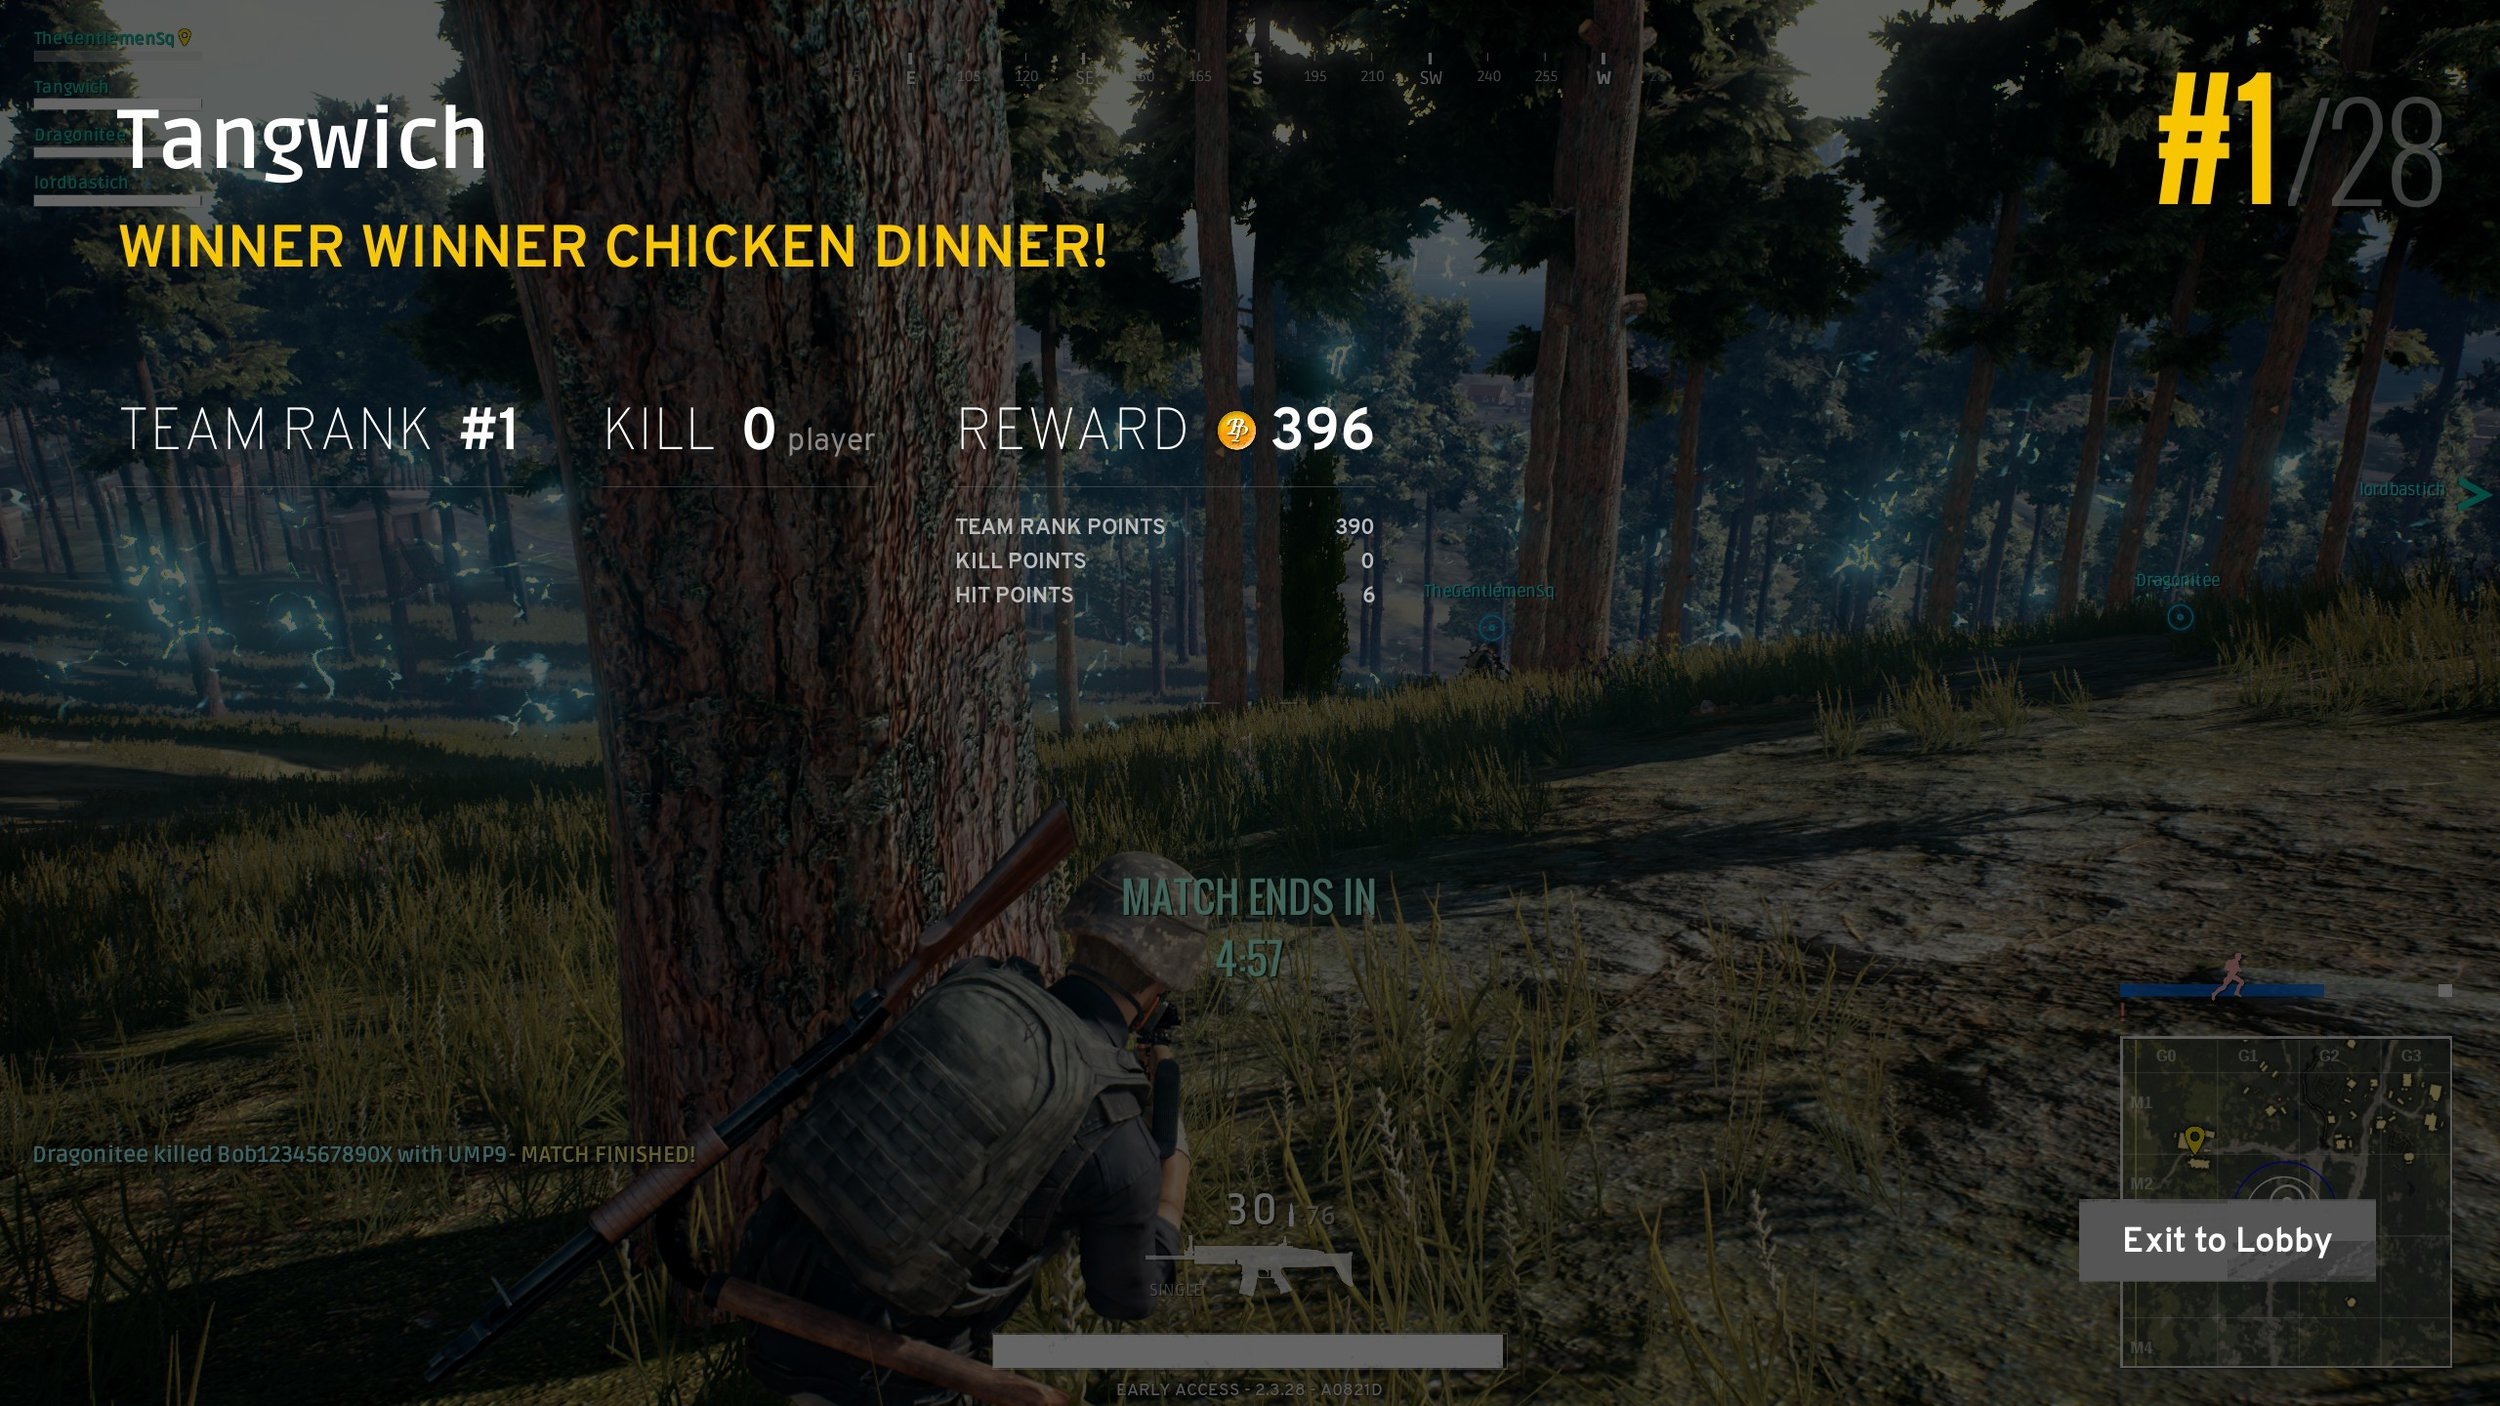 Typical of my chicken dinners. Zero kills, hiding behind something.